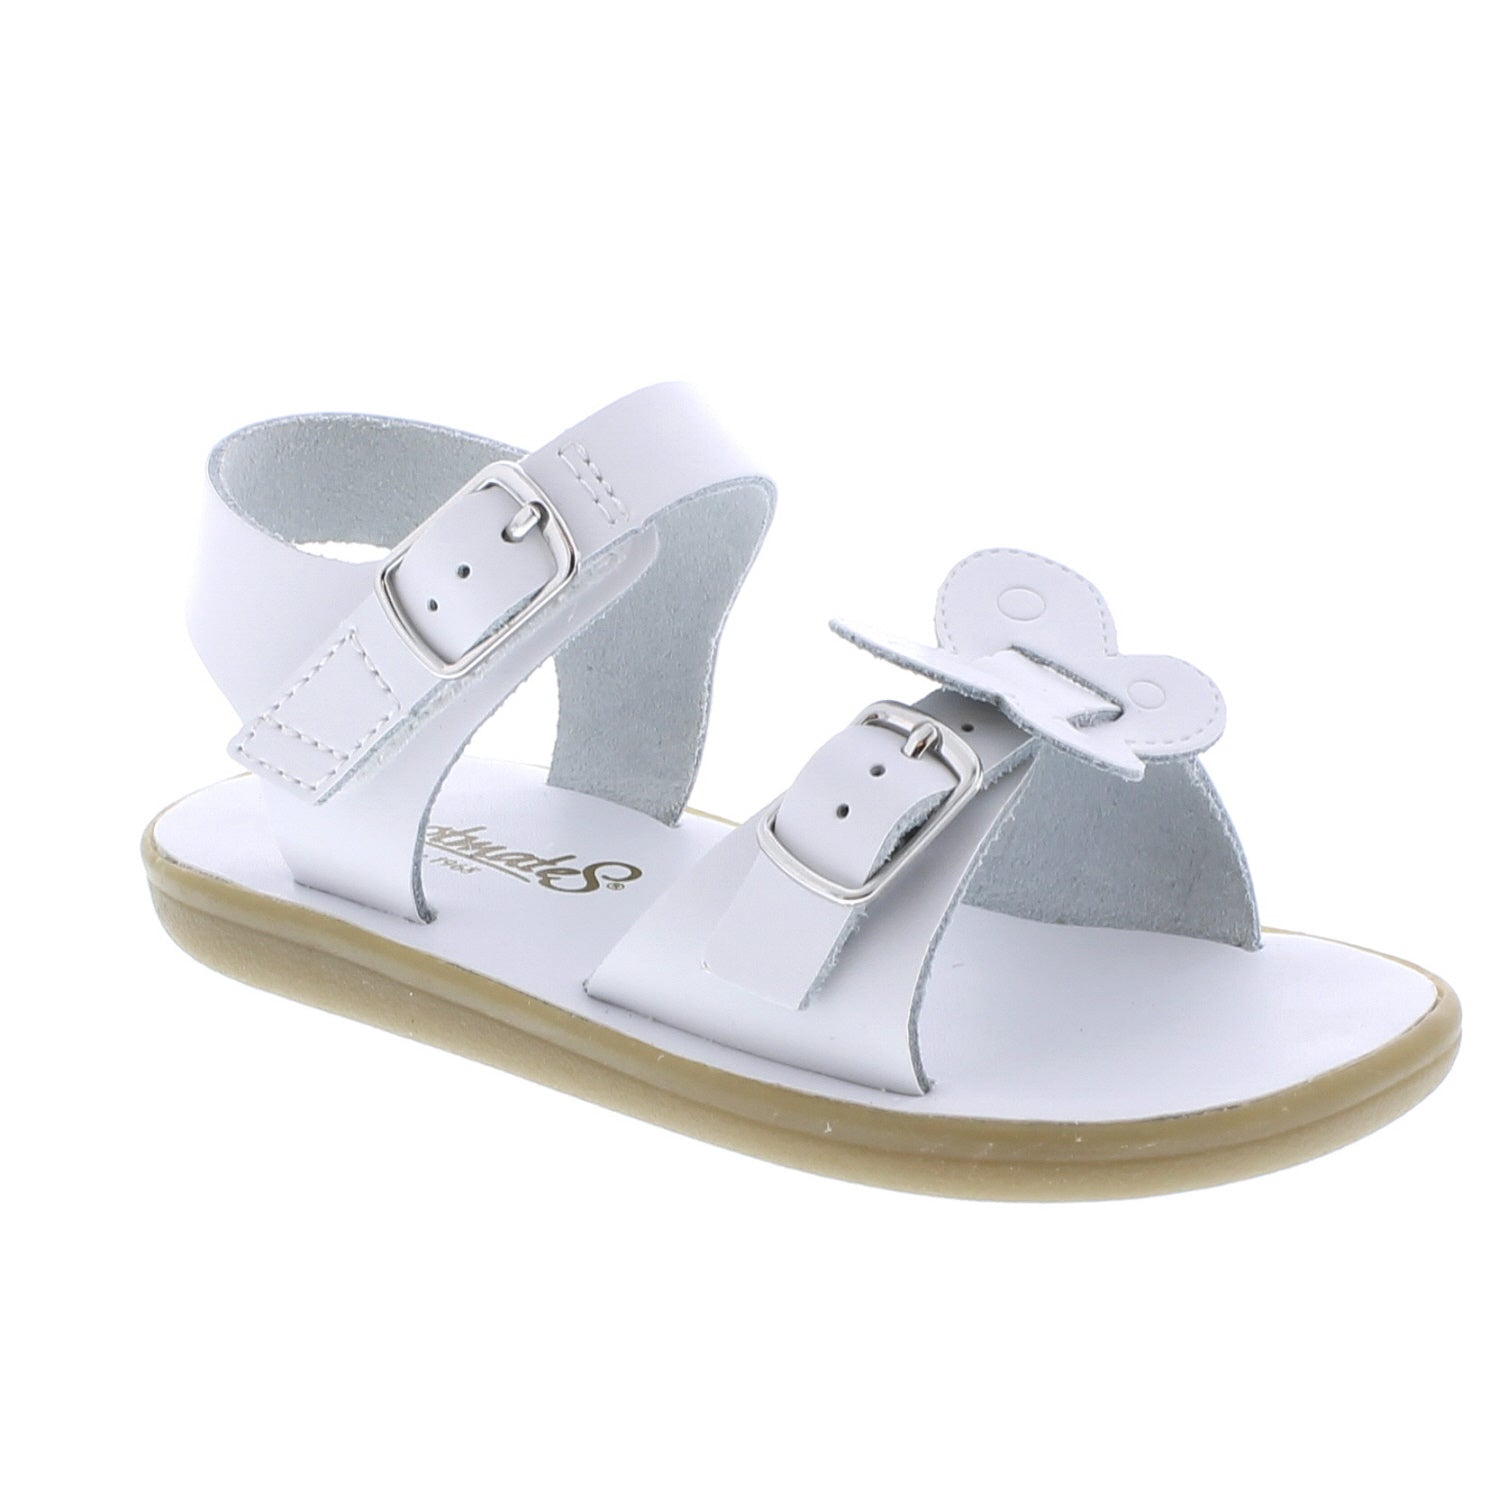 Monarch - White by Footmates - Ponseti's Shoes